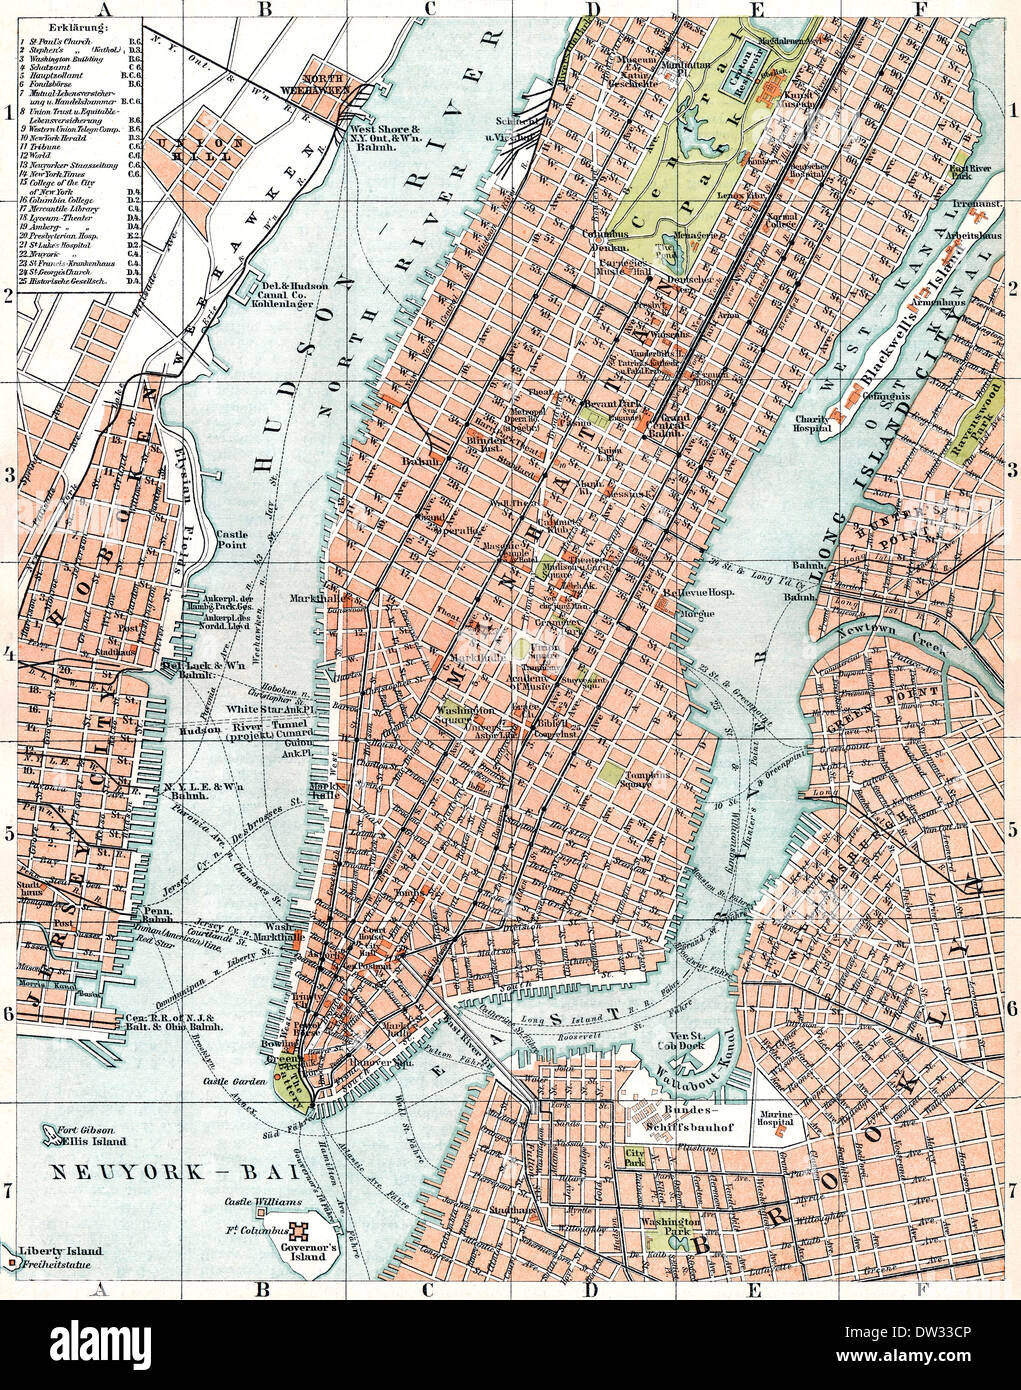 Historical Map Of New York City USA Stock Photo Royalty - Usa map new york